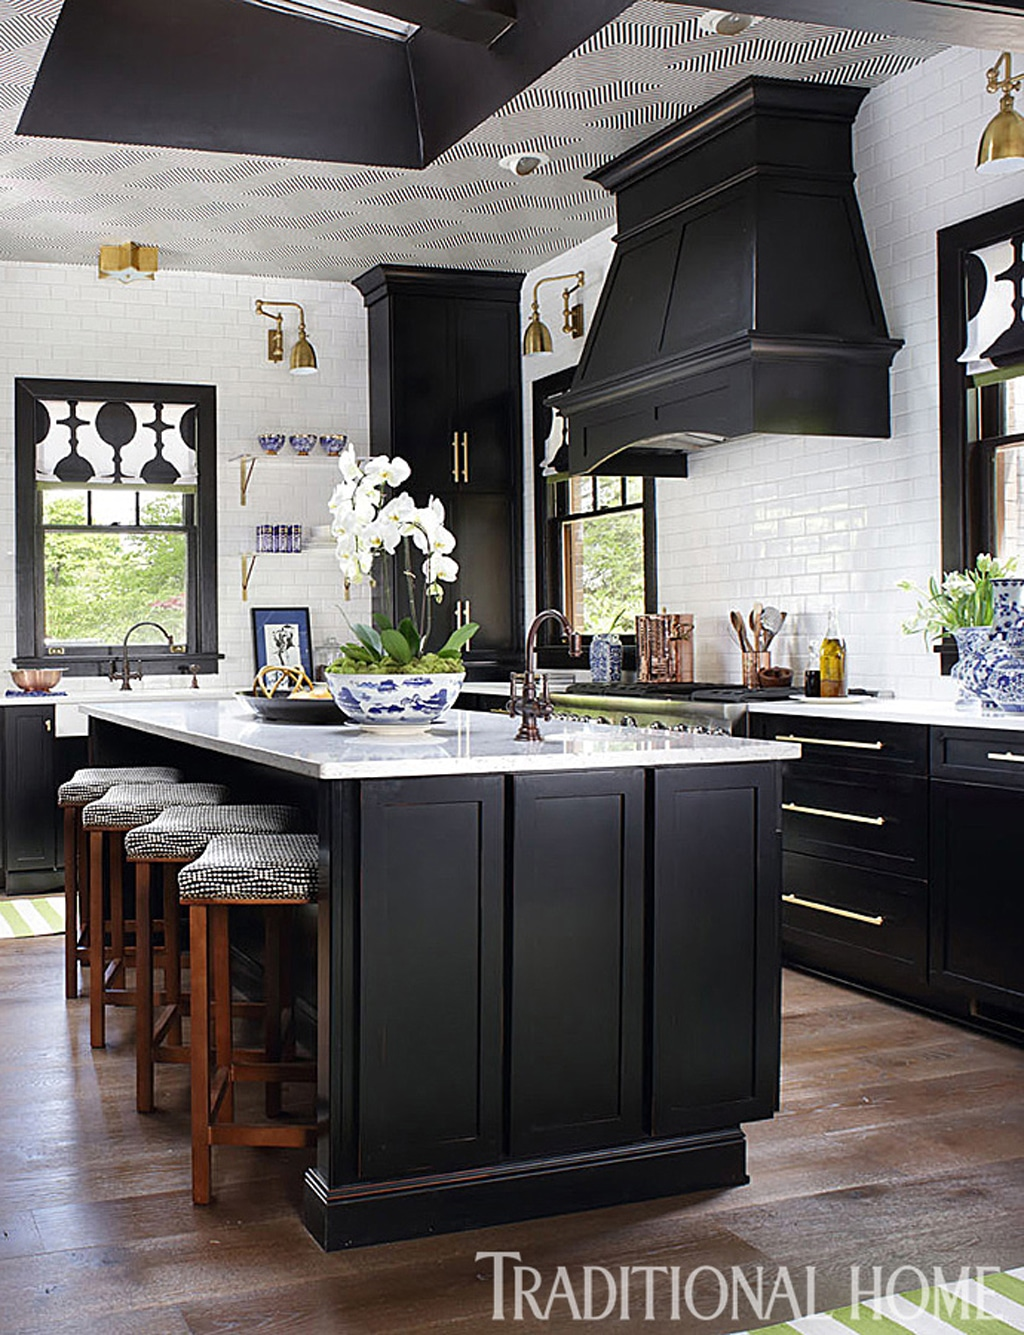 Black kitchen cabinets from Traditional Home - 30 Cabinet Colors that will Rejuvenate your Kitchen